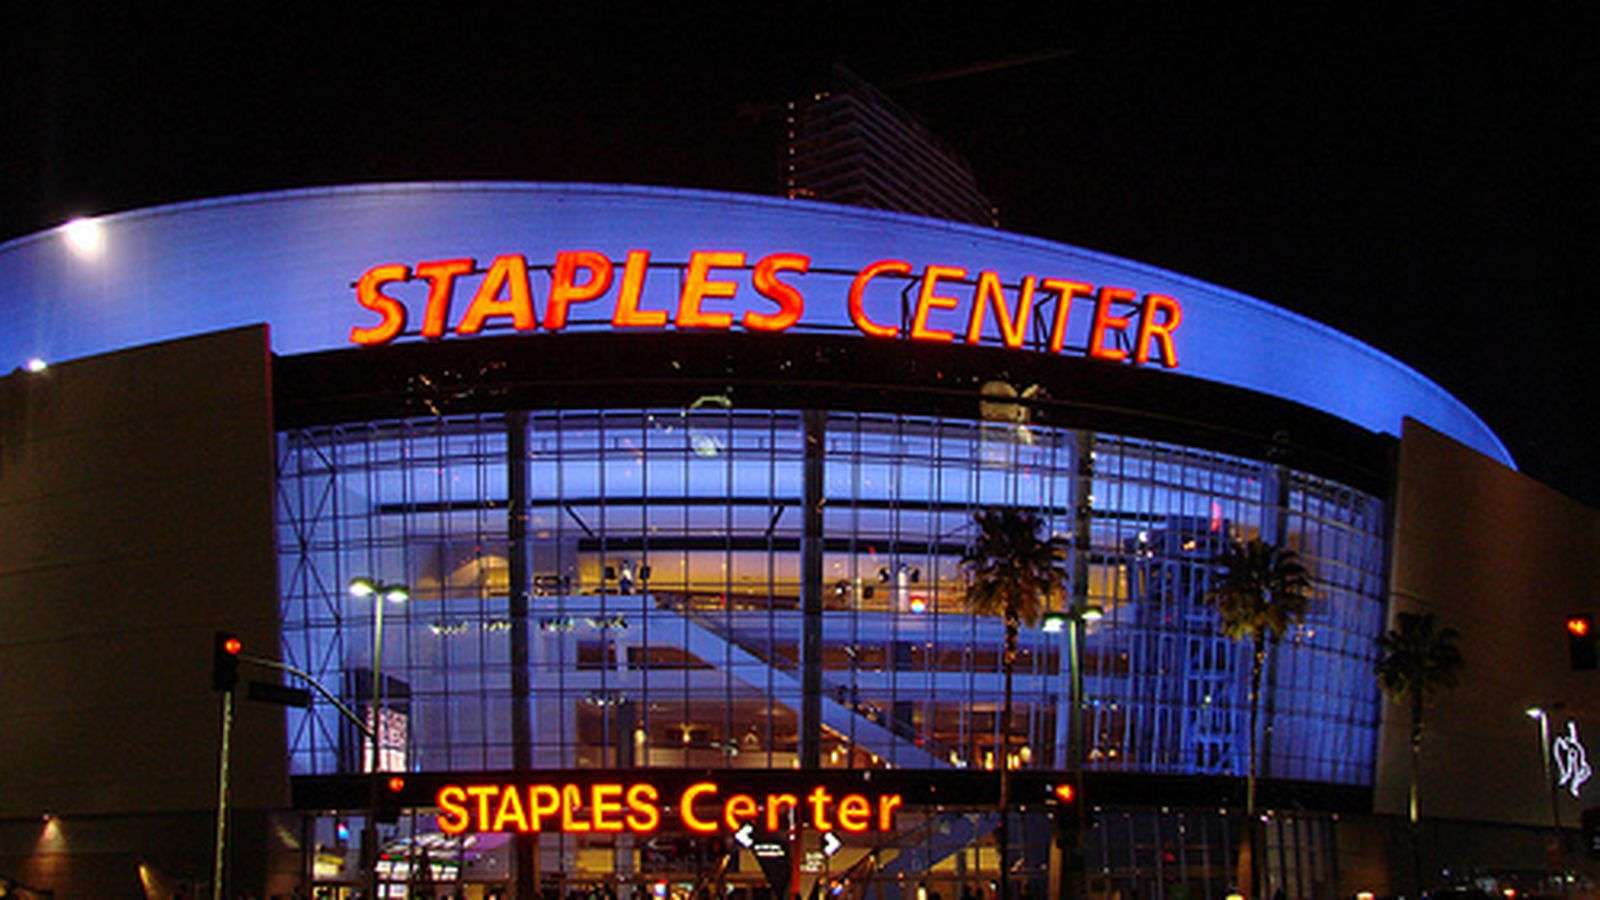 Bruins Hd Wallpaper What To Eat At Staples Center Home Of The La Lakers